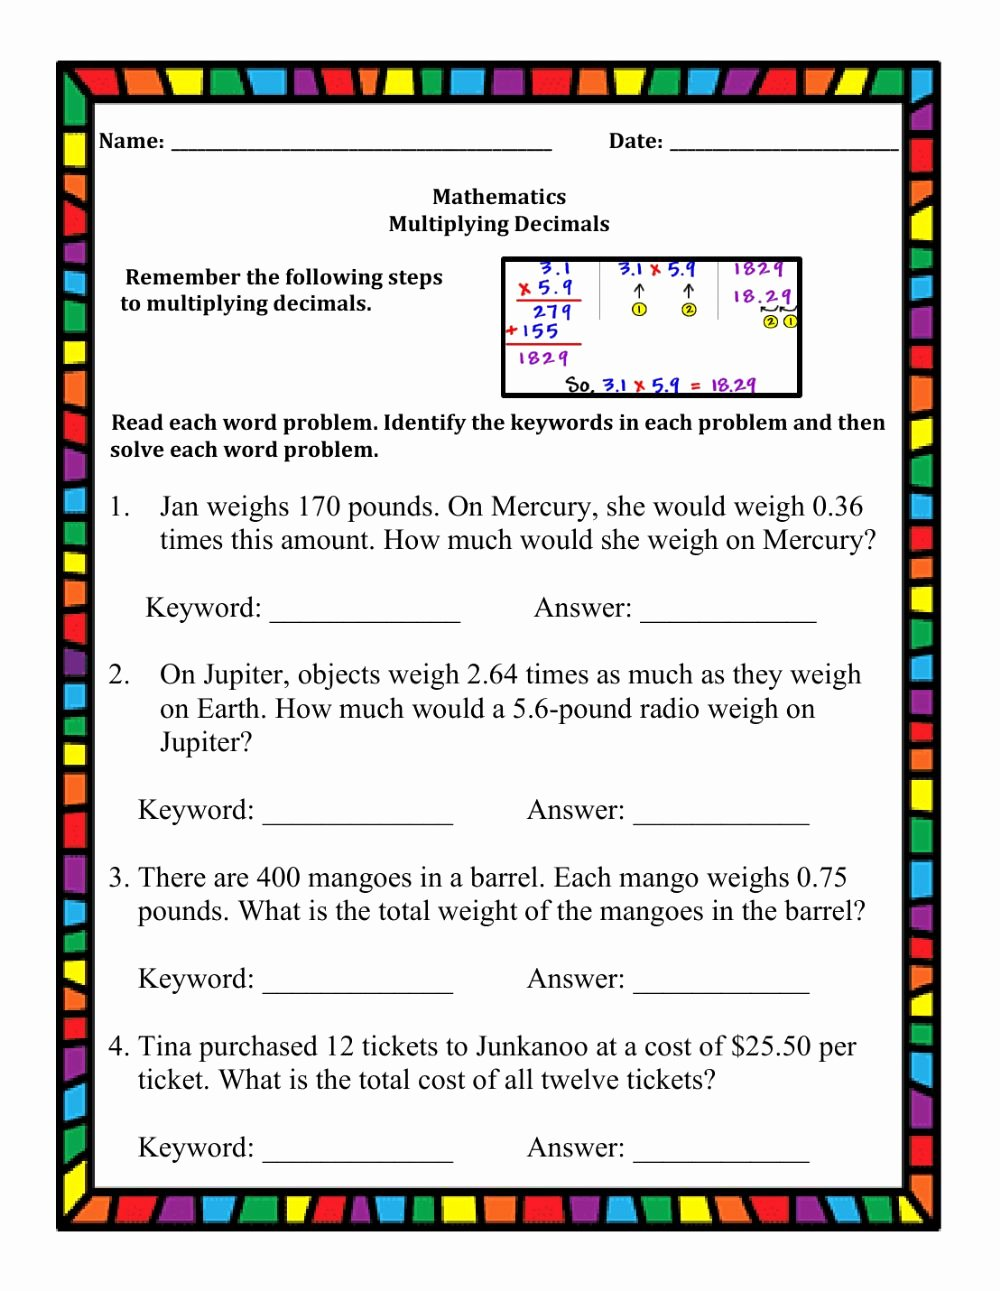 Multiplication Worksheets Decimals Inspirational Multiplying Decimals Word Problems Interactive Worksheet